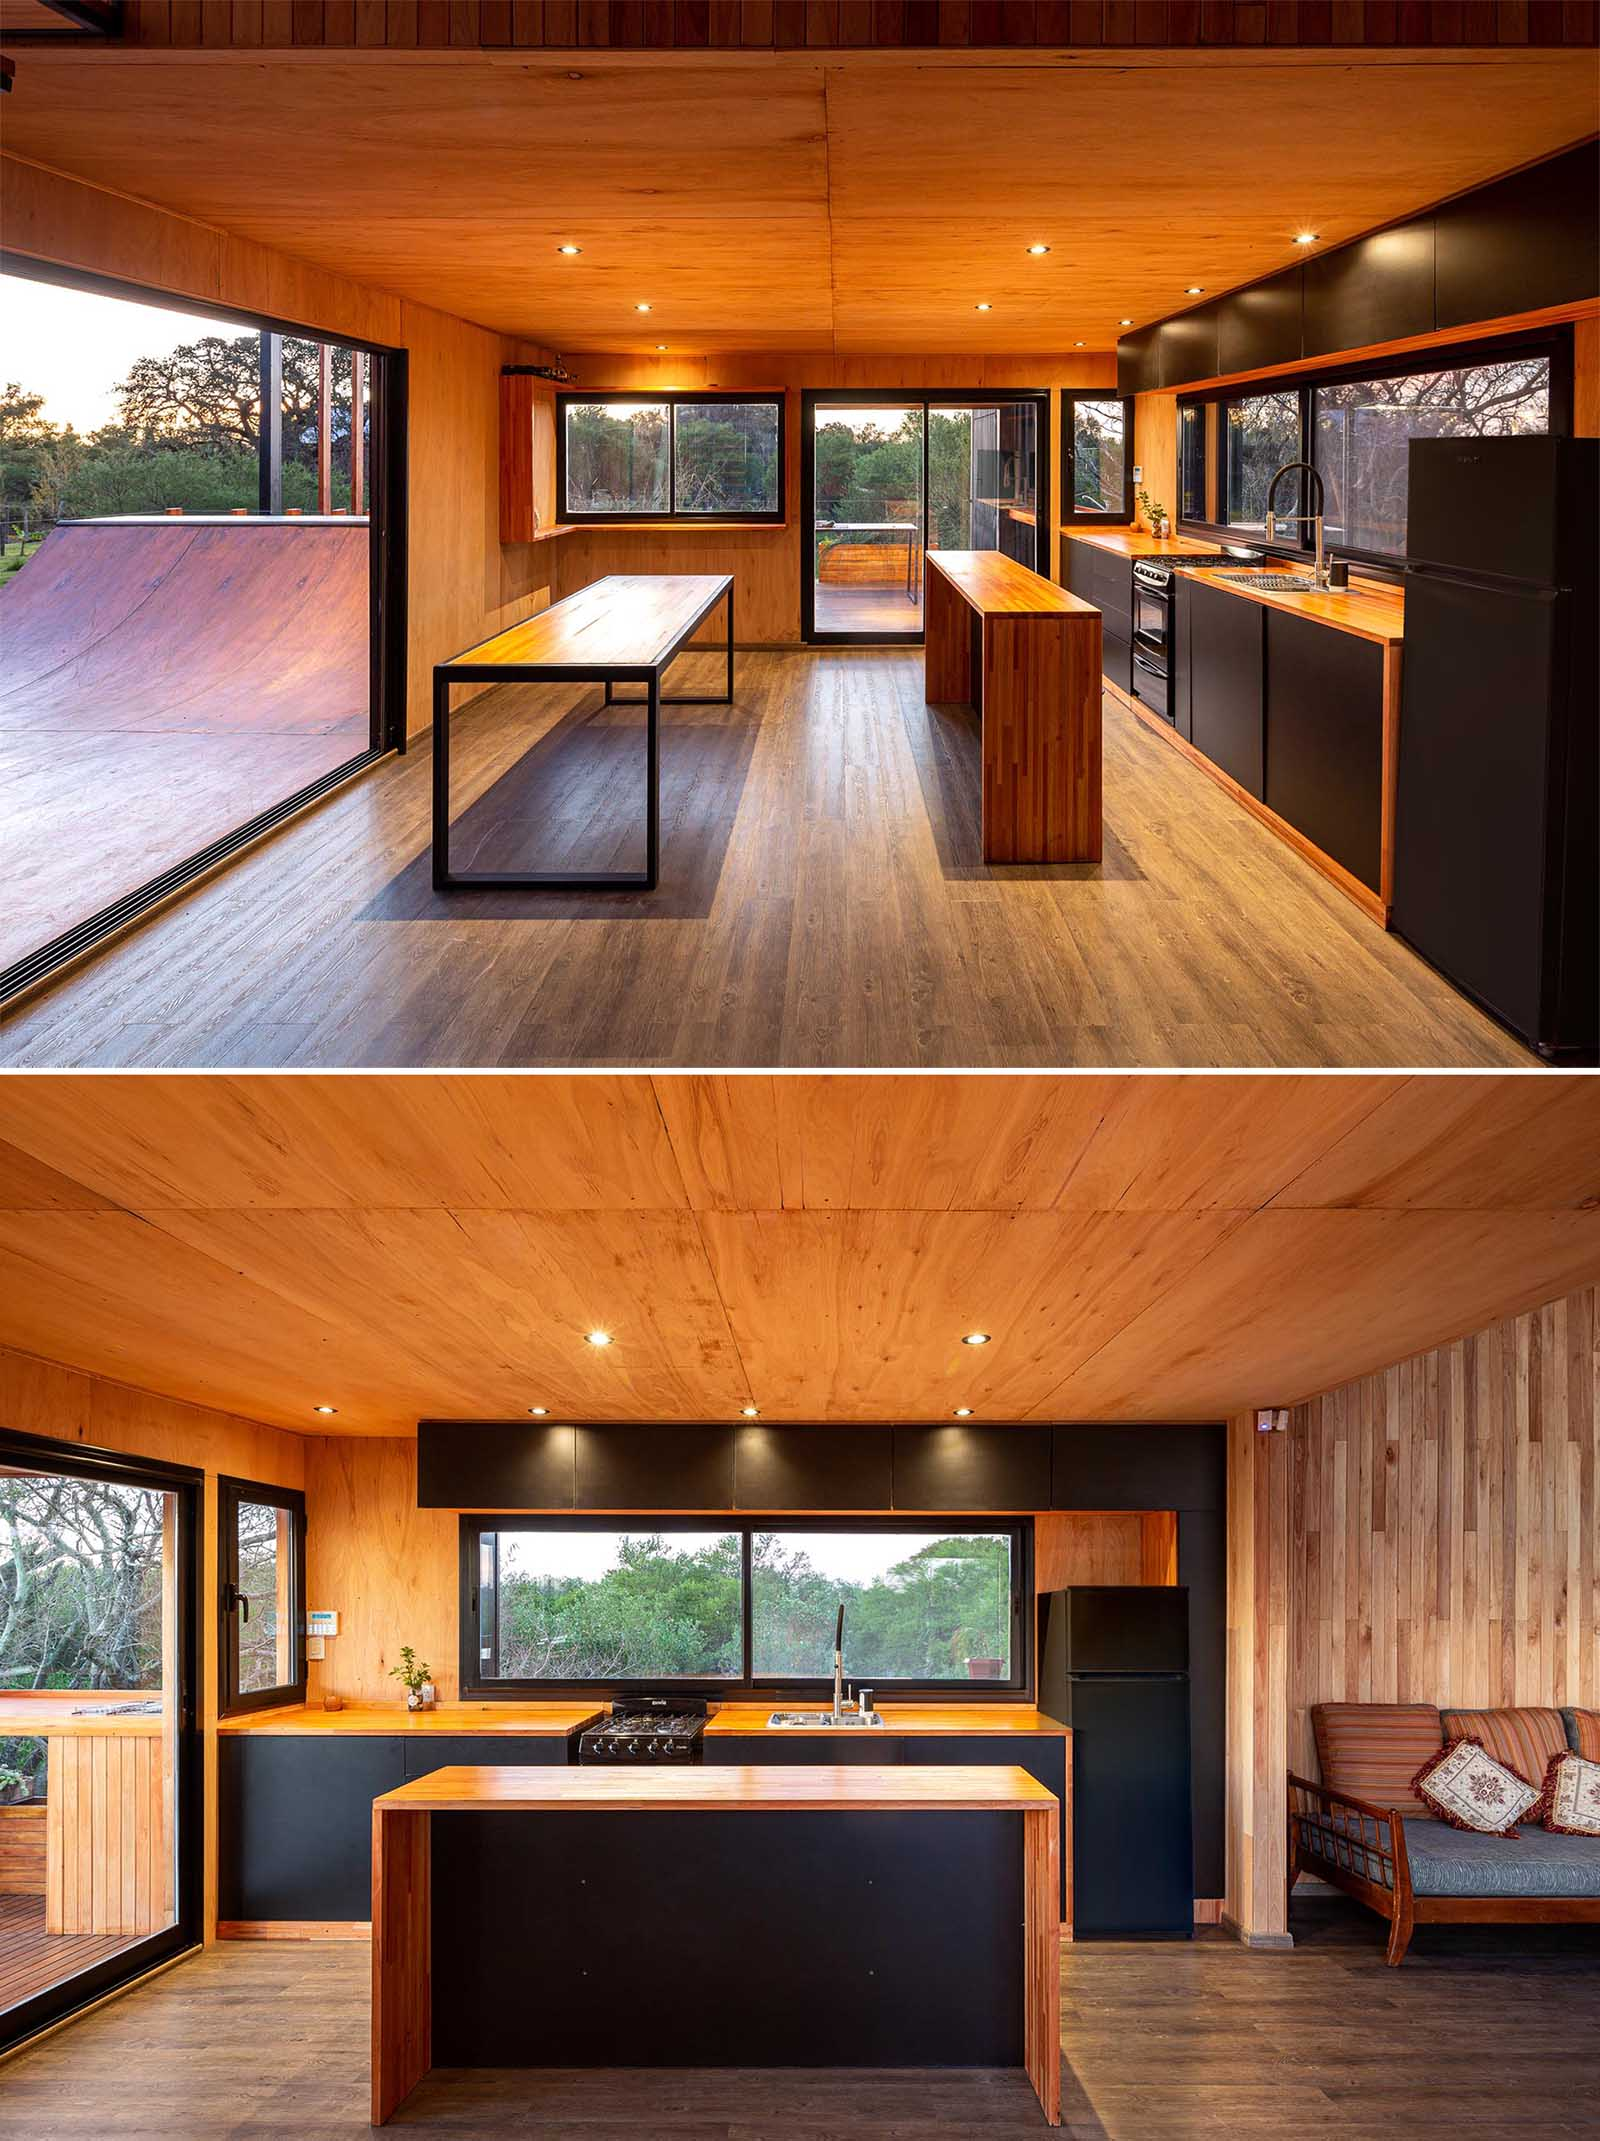 A modern house with a wood and black kitchen and dining area, and a skateboard ramp.